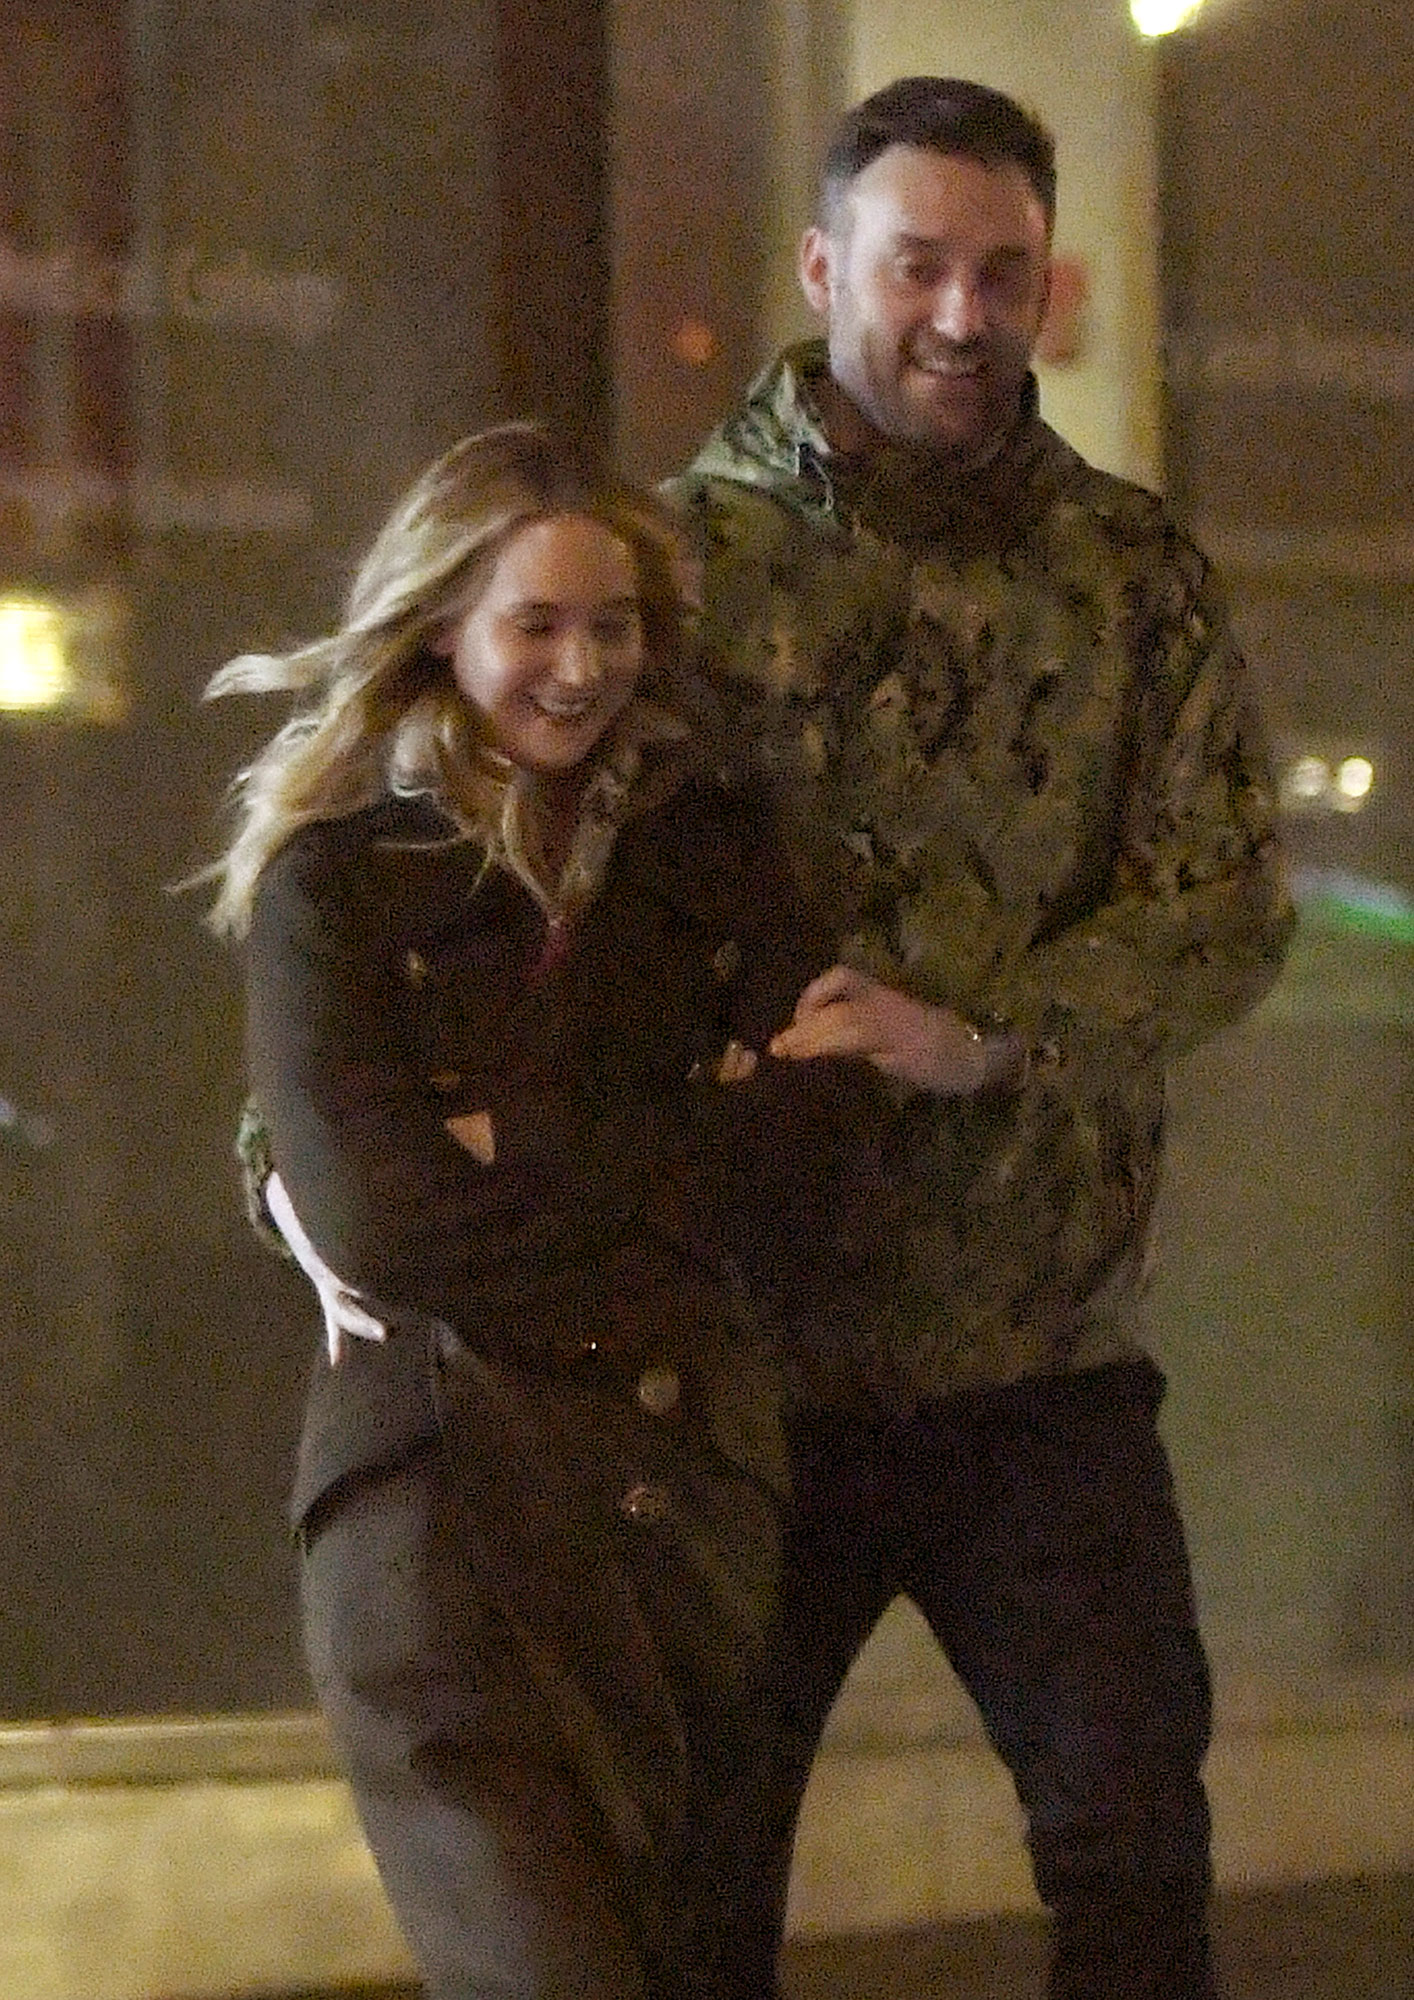 EXCLUSIVE: Jennifer Lawrence All Smiles while taking her beau out for dinner tonight in New York City